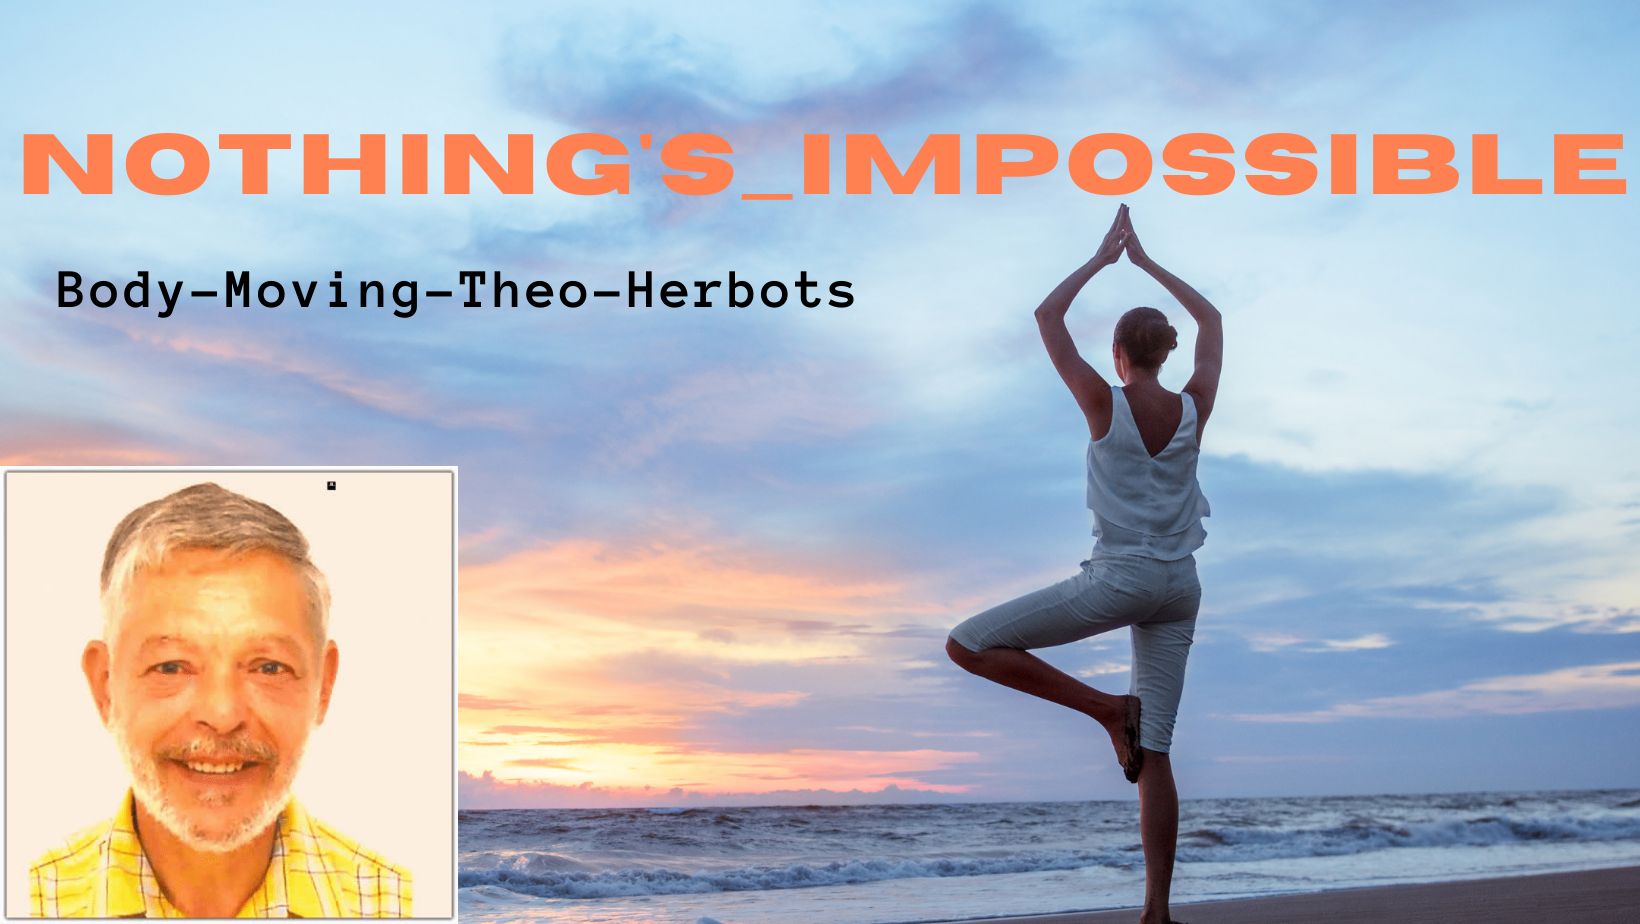 Presentatie-Video || Presentation Video-Body-Moving-Theo-Herbots